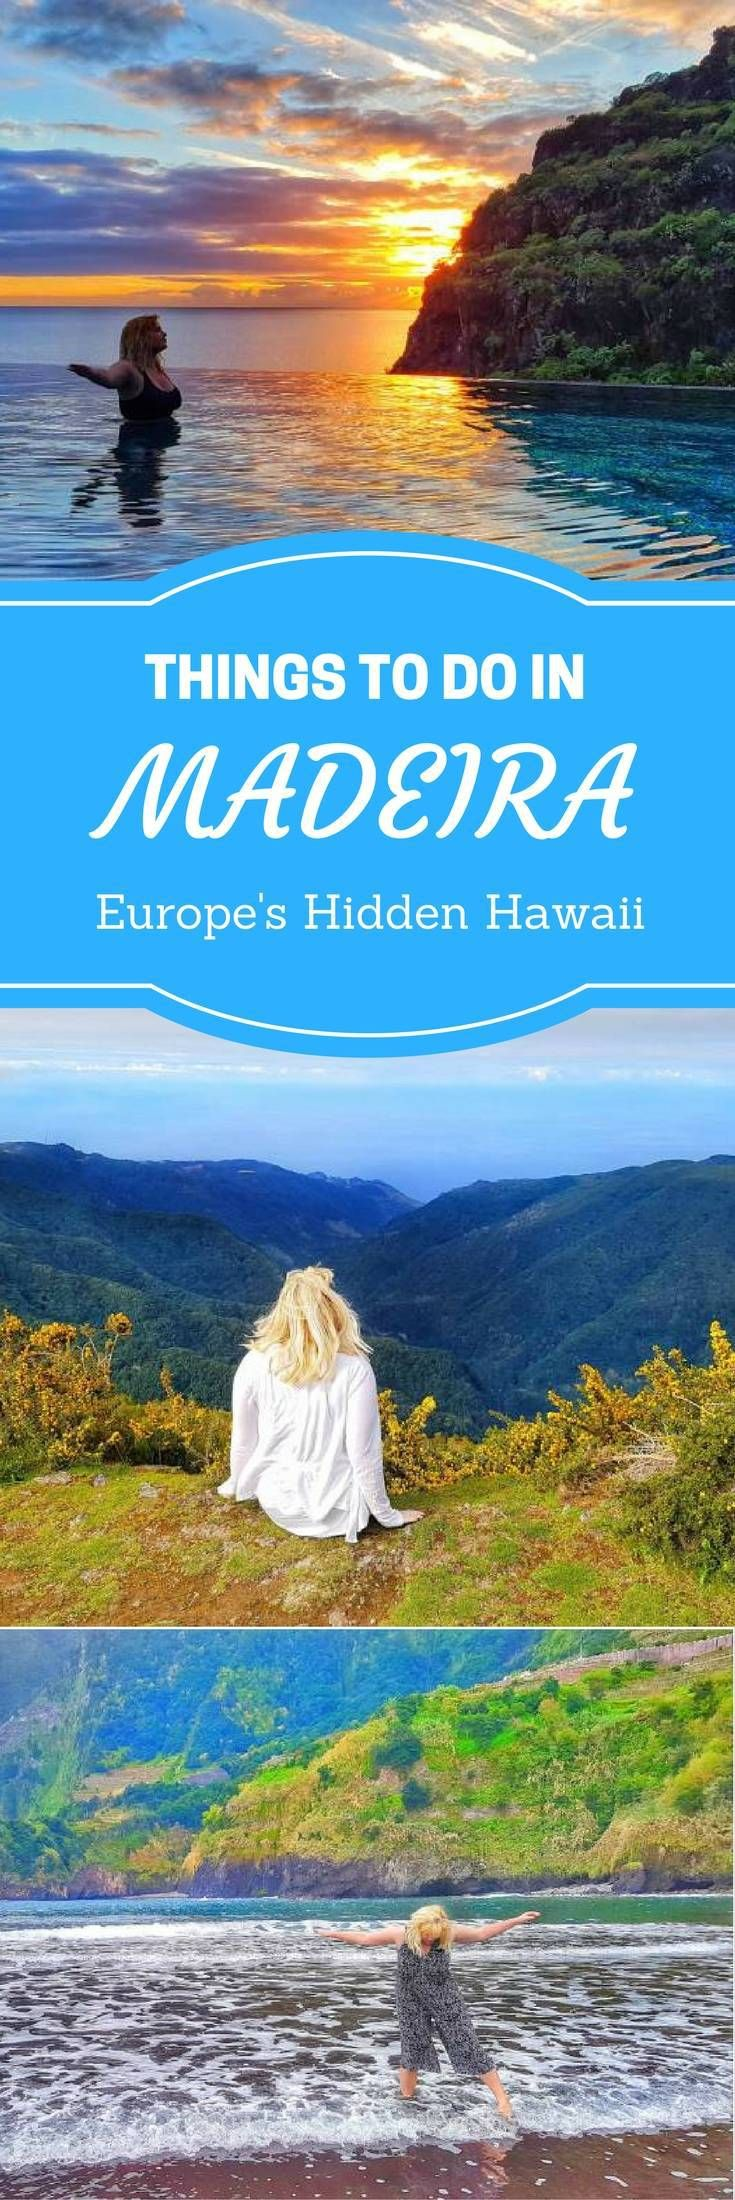 Europe's Hidden Hawaii – Things to do in Madeira, Portugal. Things to do? black sandy beaches and lava pools, levada walks and so much more... Need a place to stay? Why not try a holiday home instead of a hotel? www.casadomiradouro.com or www.madeiracasa.com